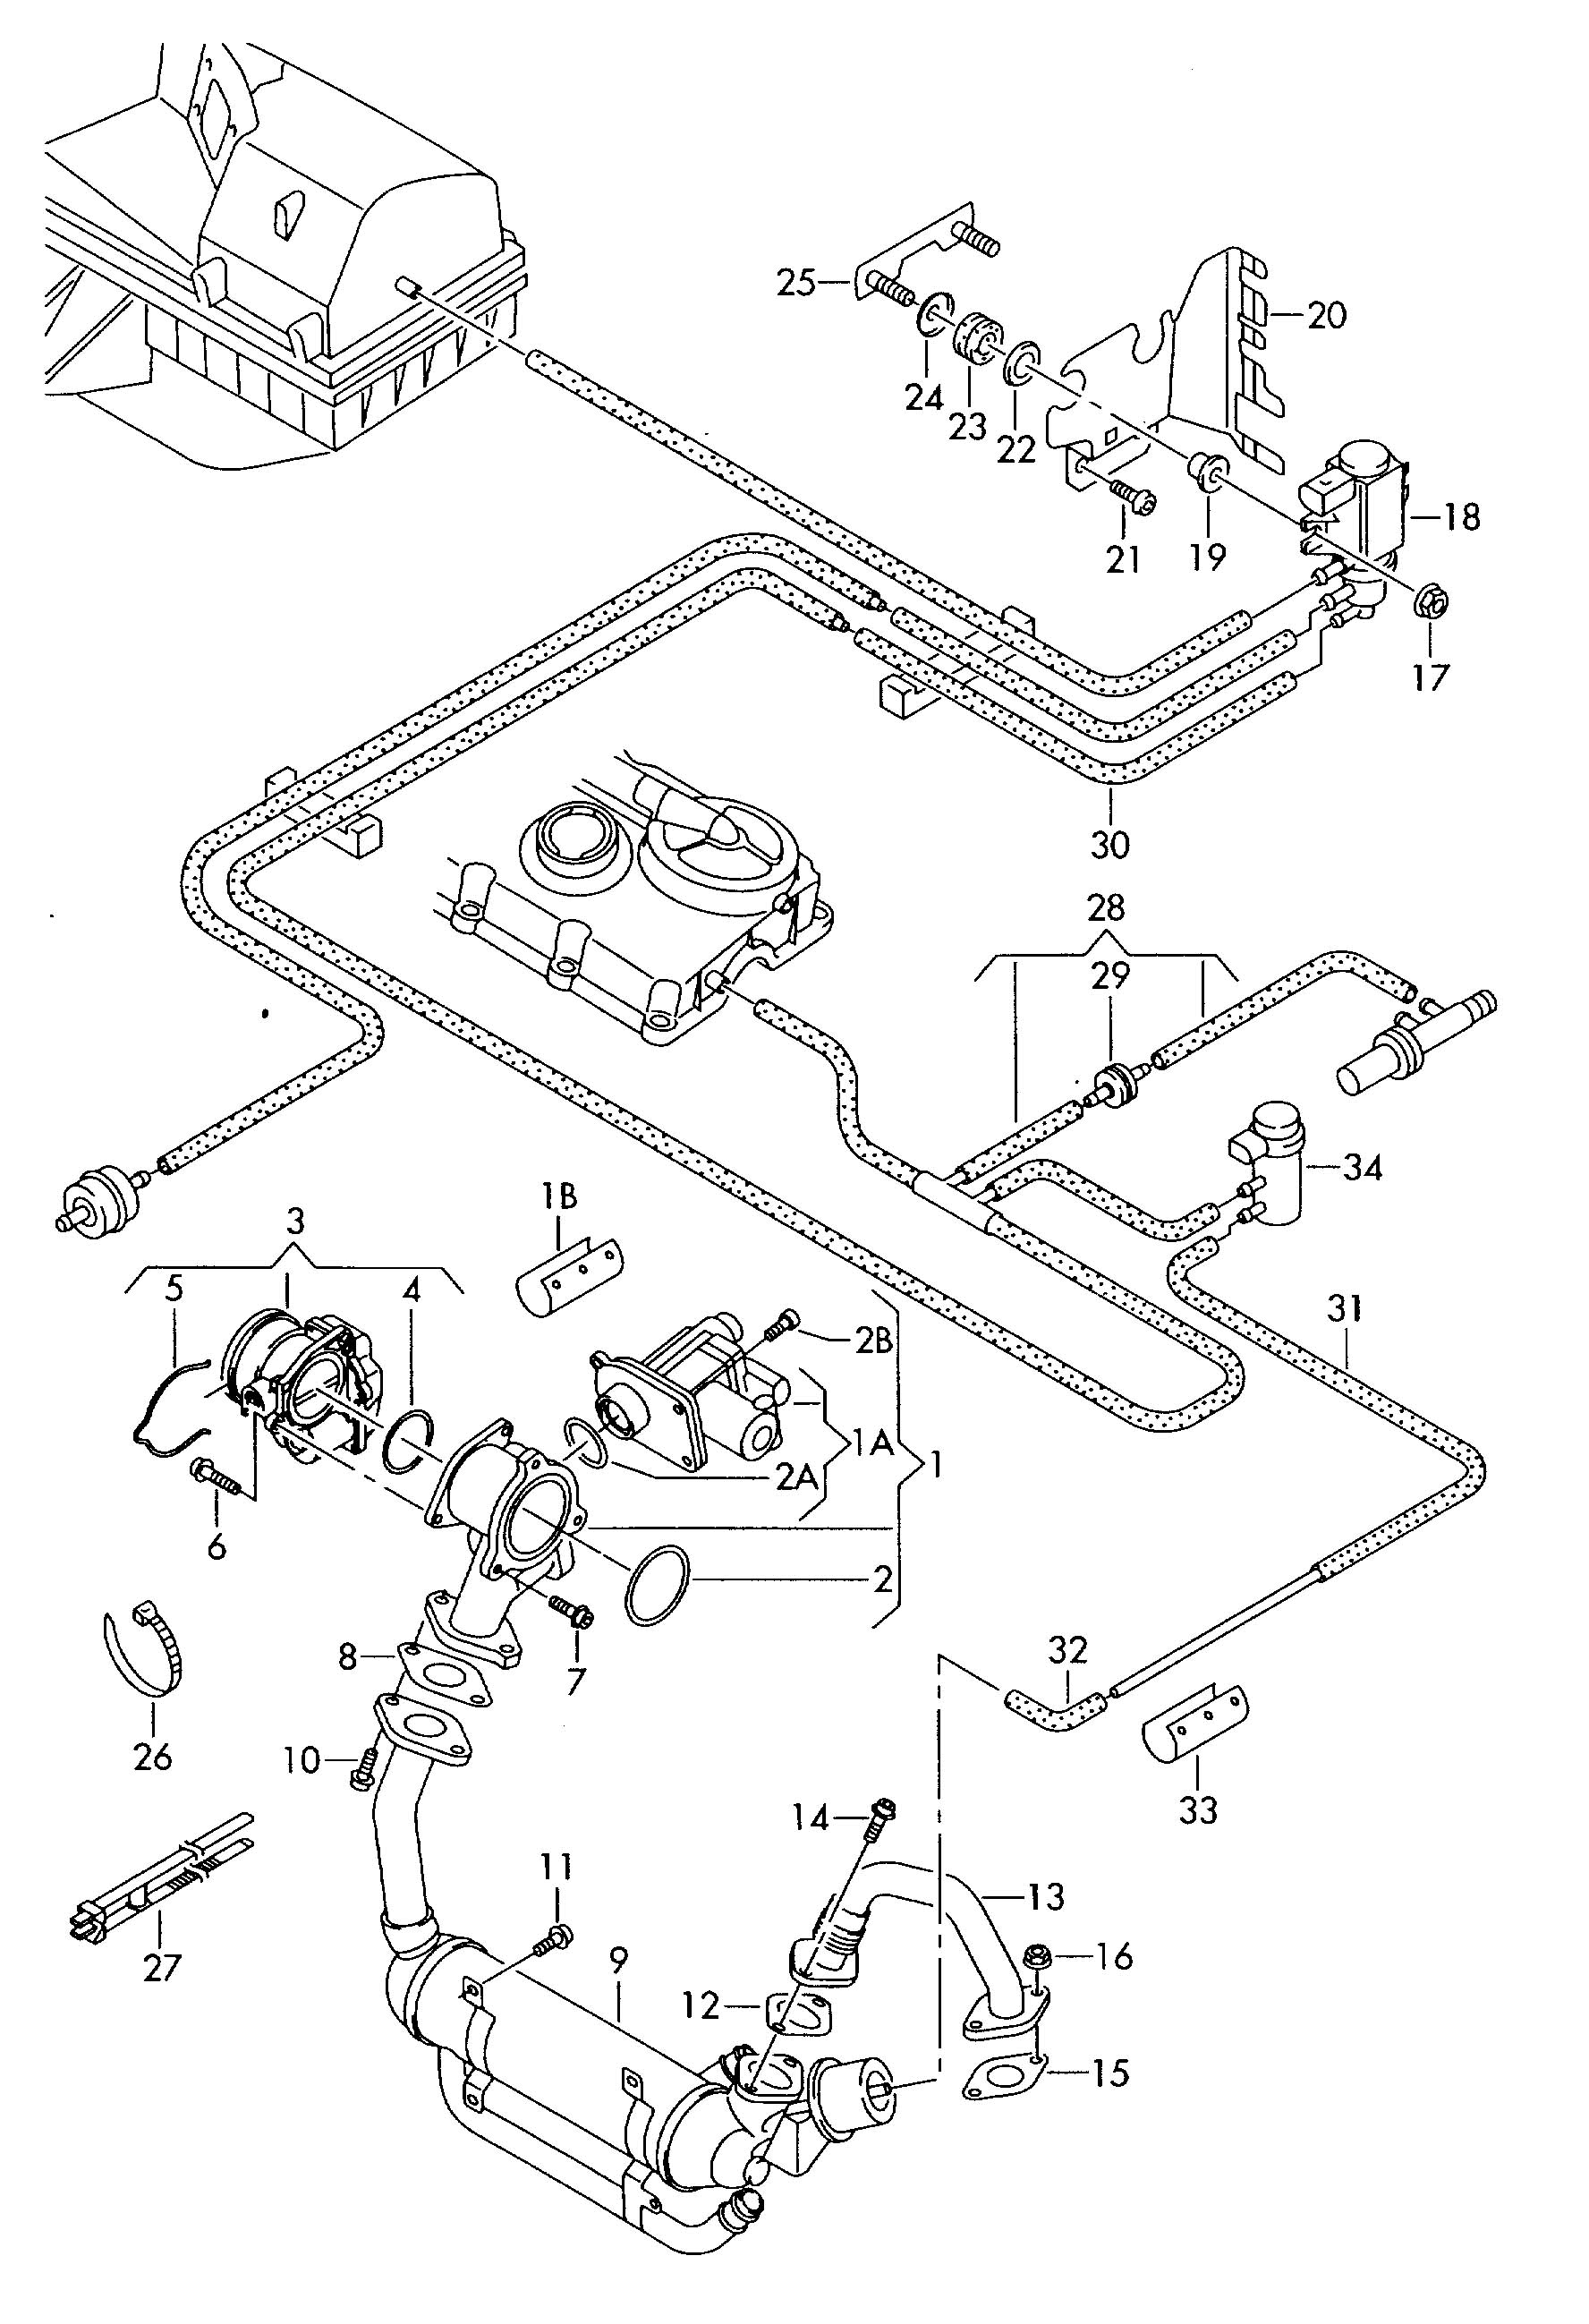 hight resolution of  here s a schematic for the egr system on the brm